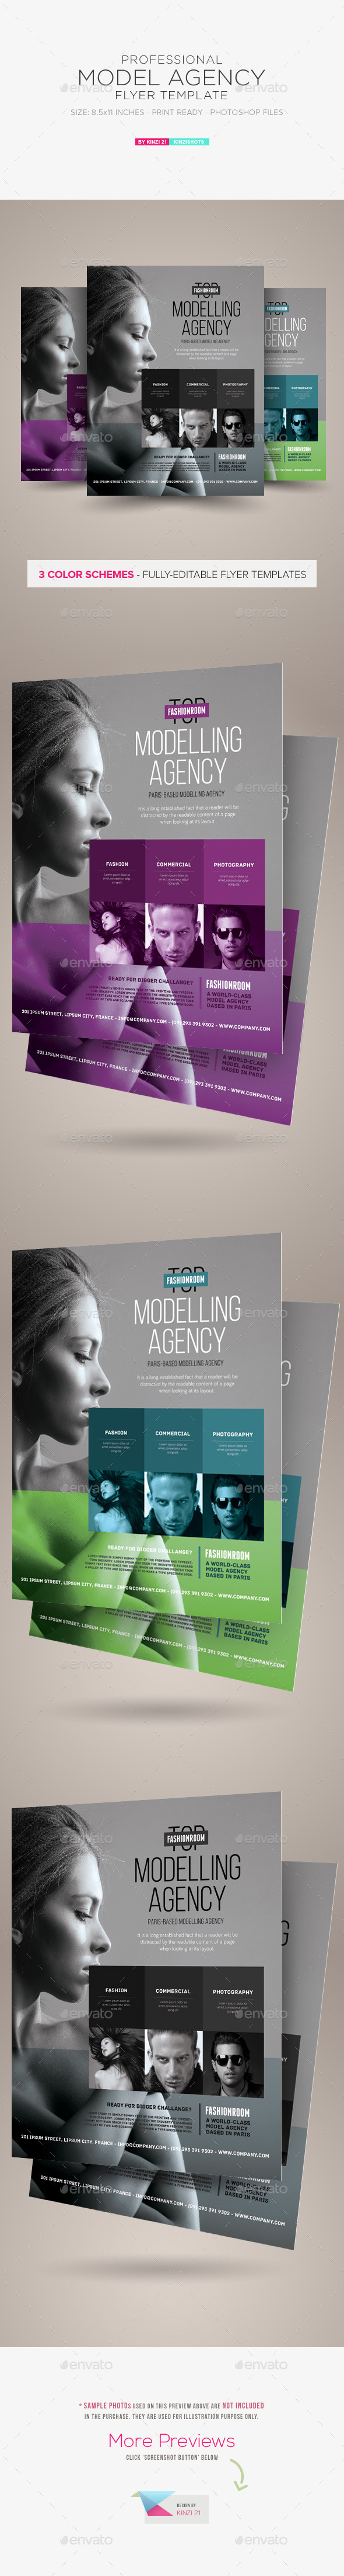 GraphicRiver Model Agency Flyer 10111142